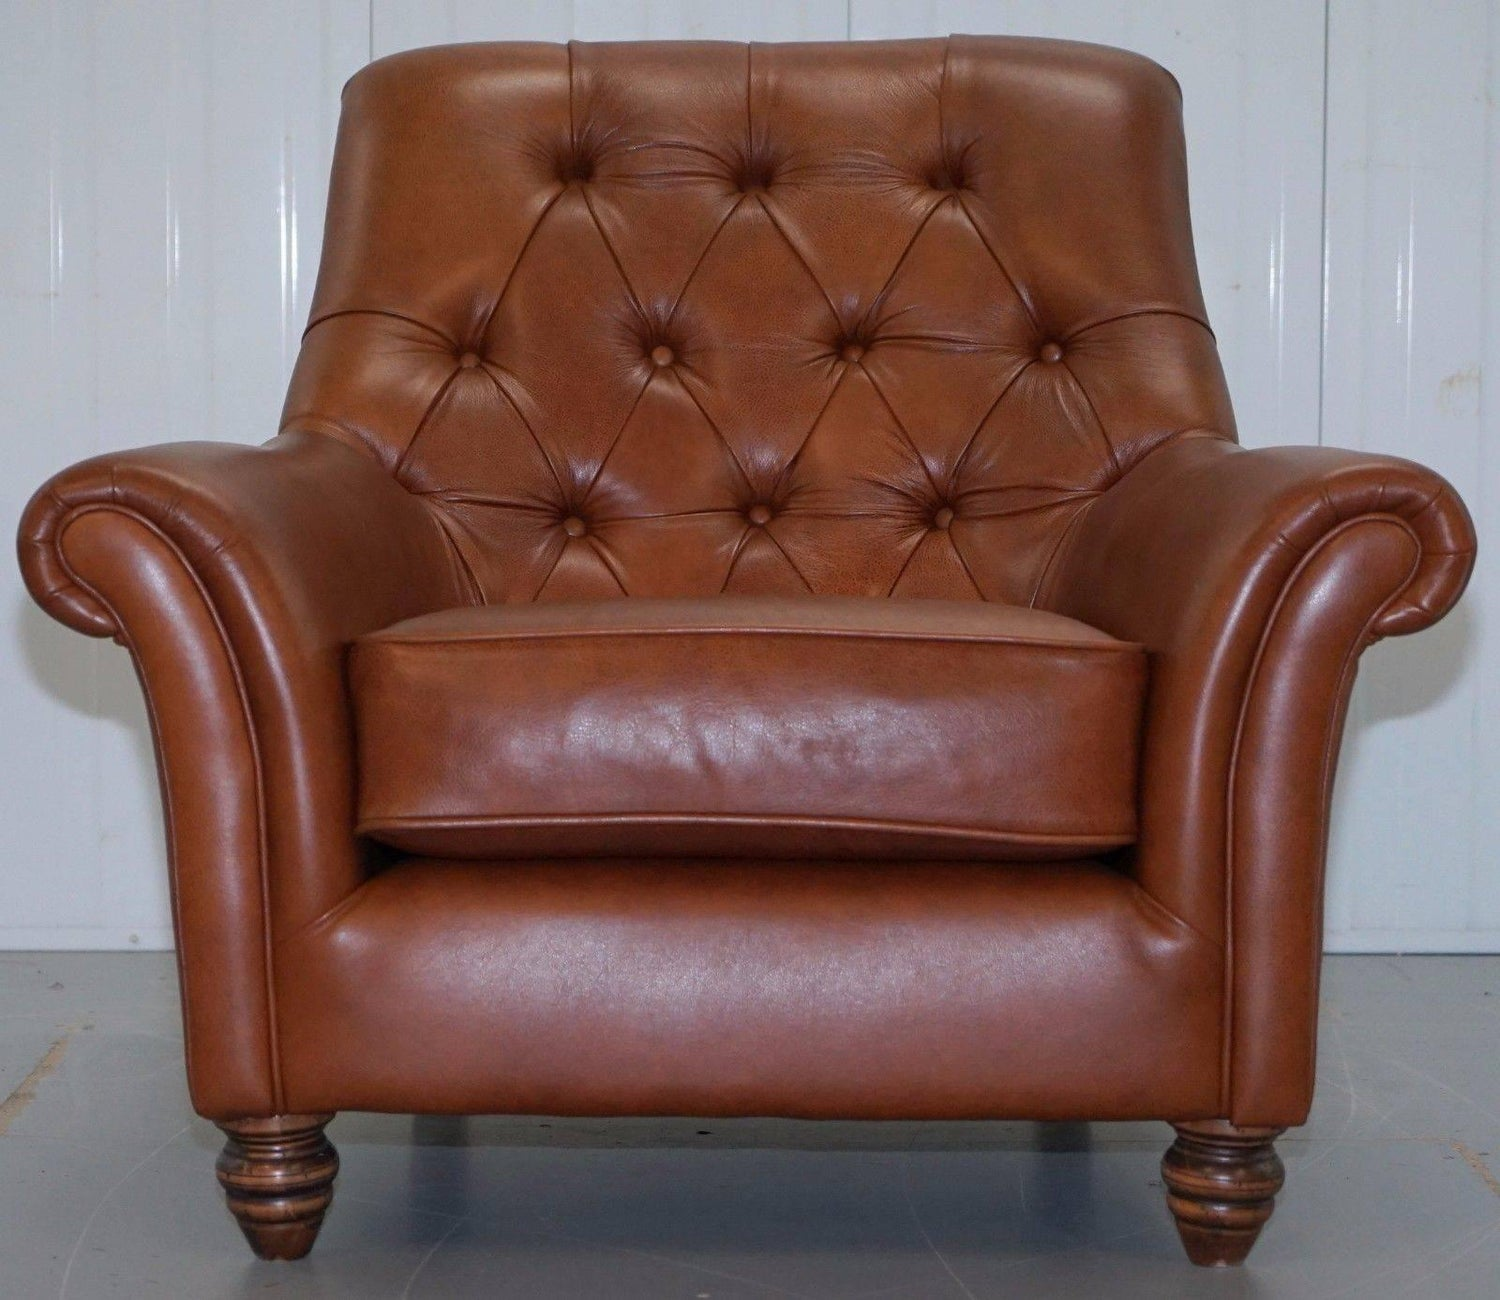 Brilliant Thomas Lloyd Chesterfield Brown Leather Sofa And Club Pabps2019 Chair Design Images Pabps2019Com